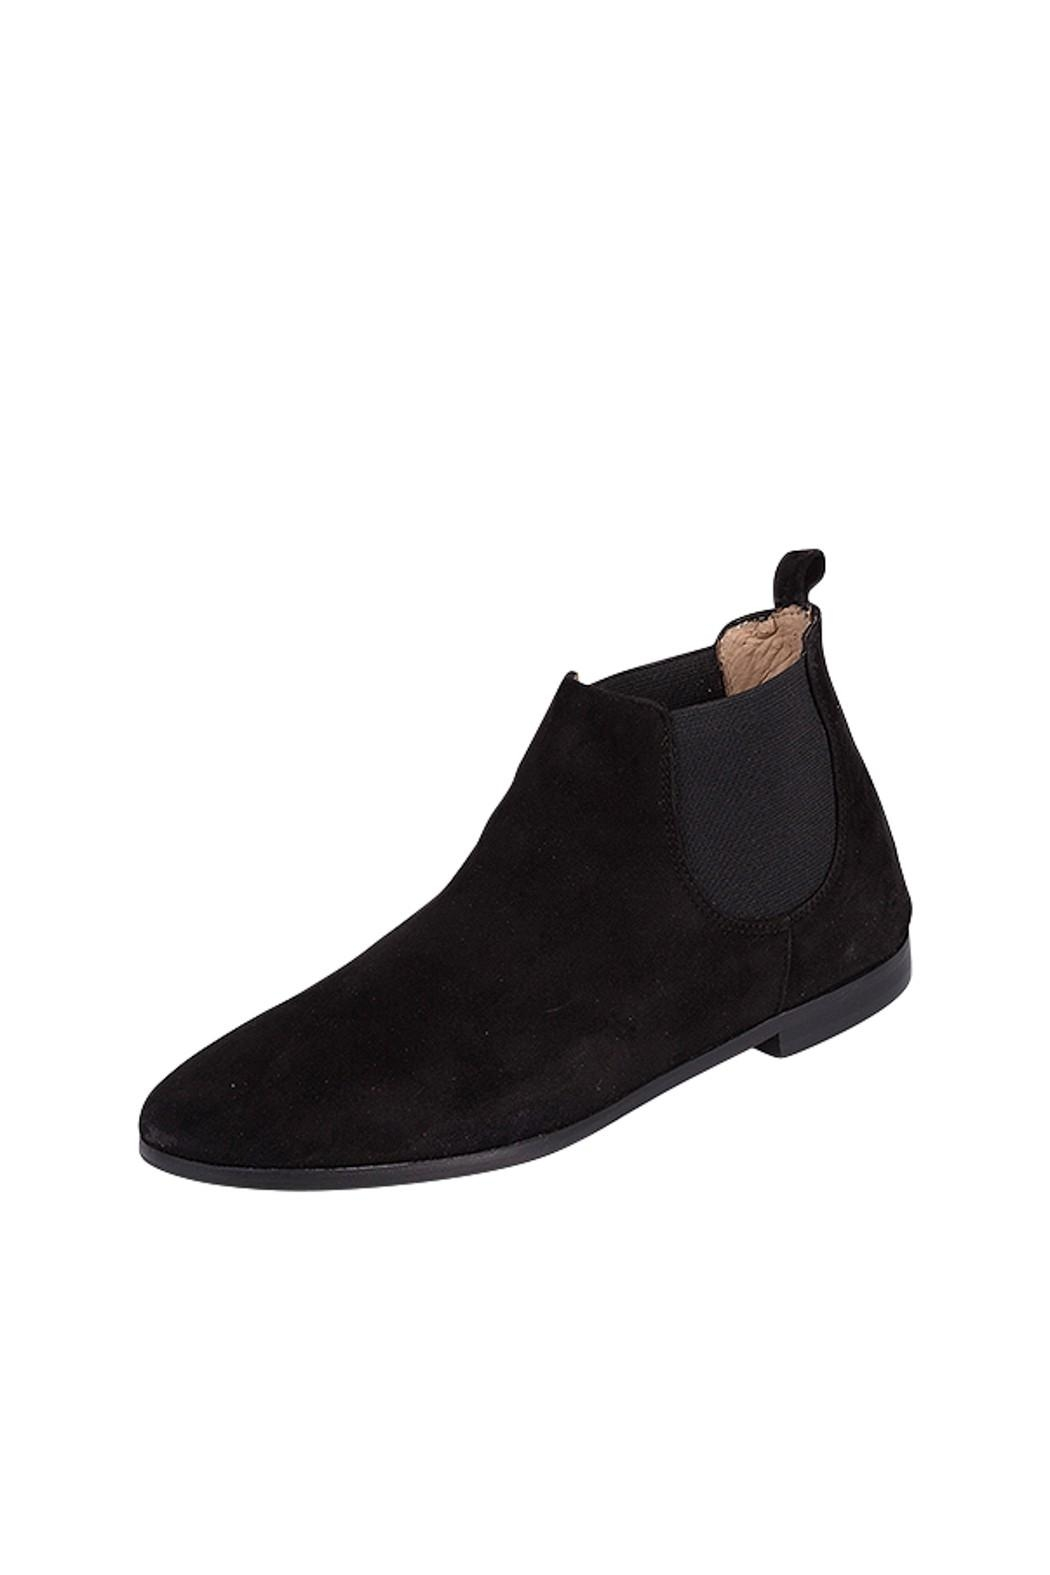 Pascucci Black Suede Bootie - Front Full Image